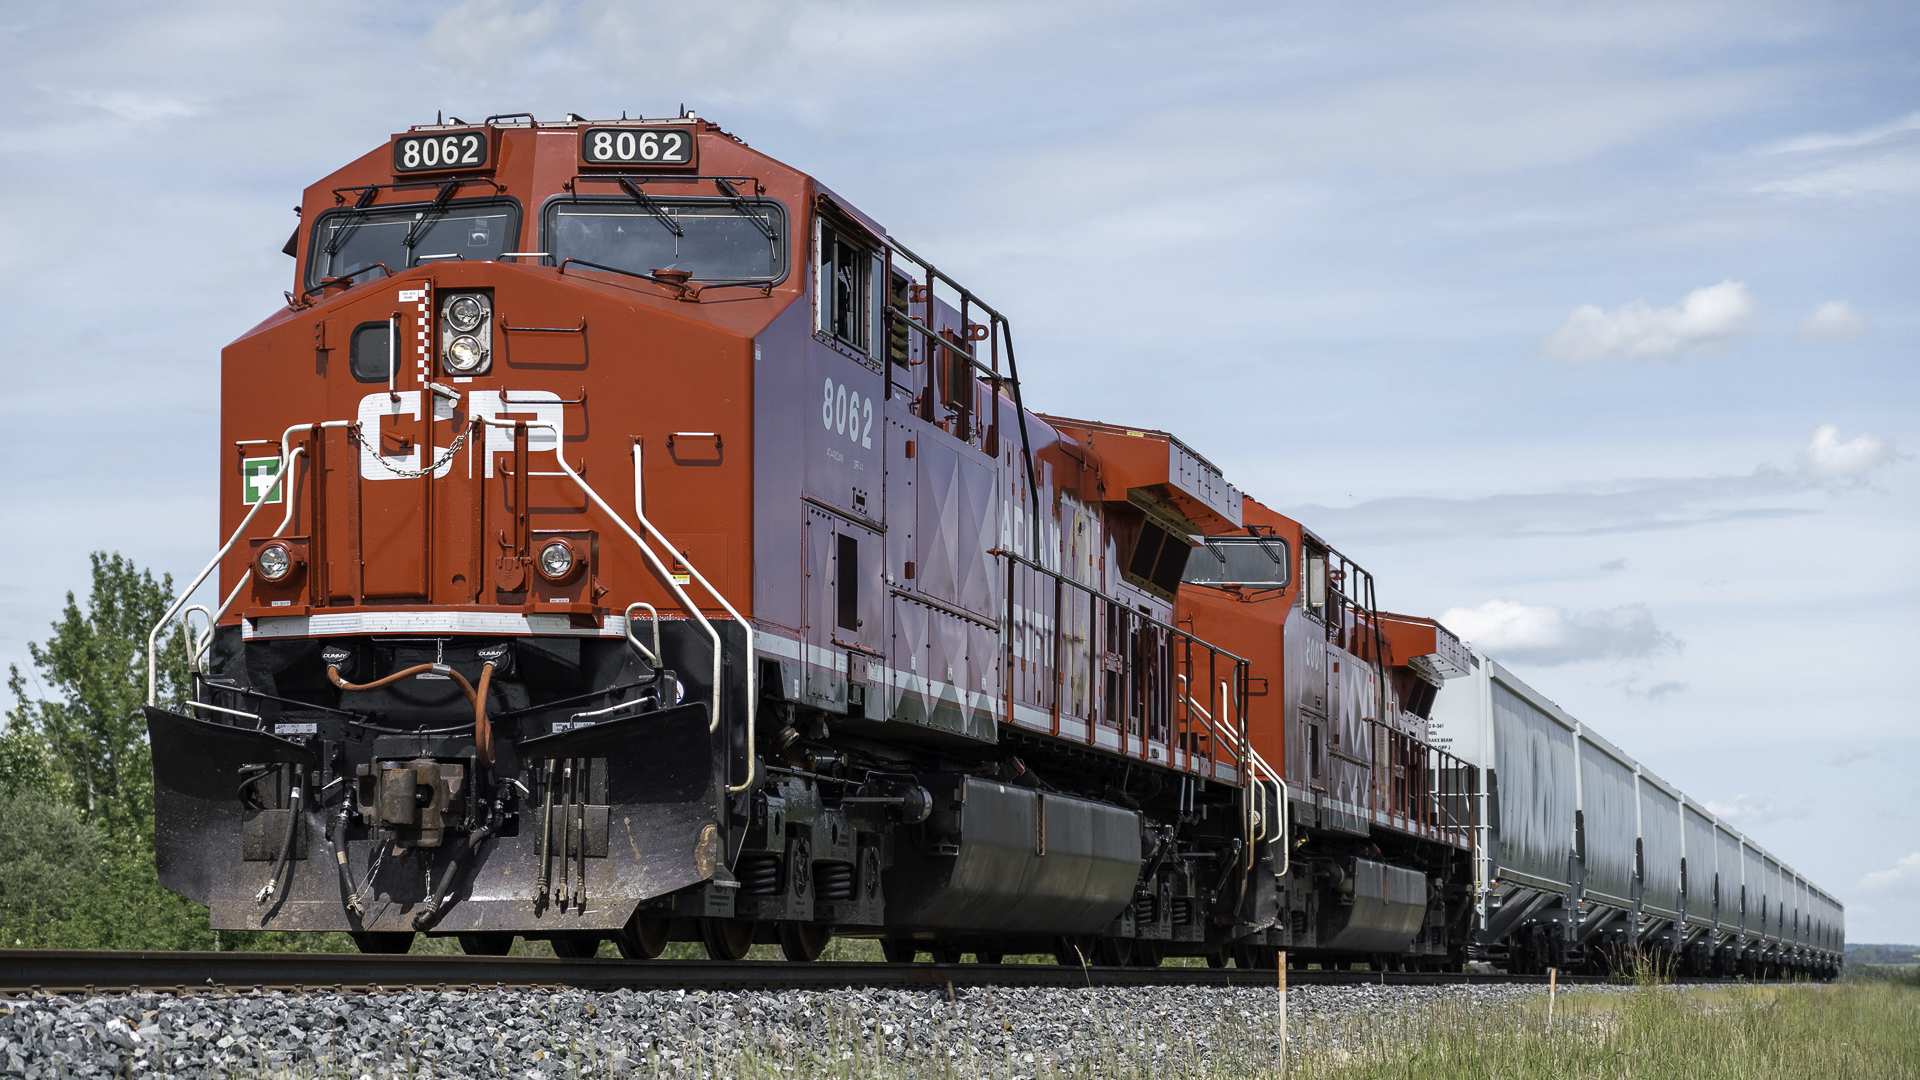 A photograph of a Canadian Pacific train on a train track.